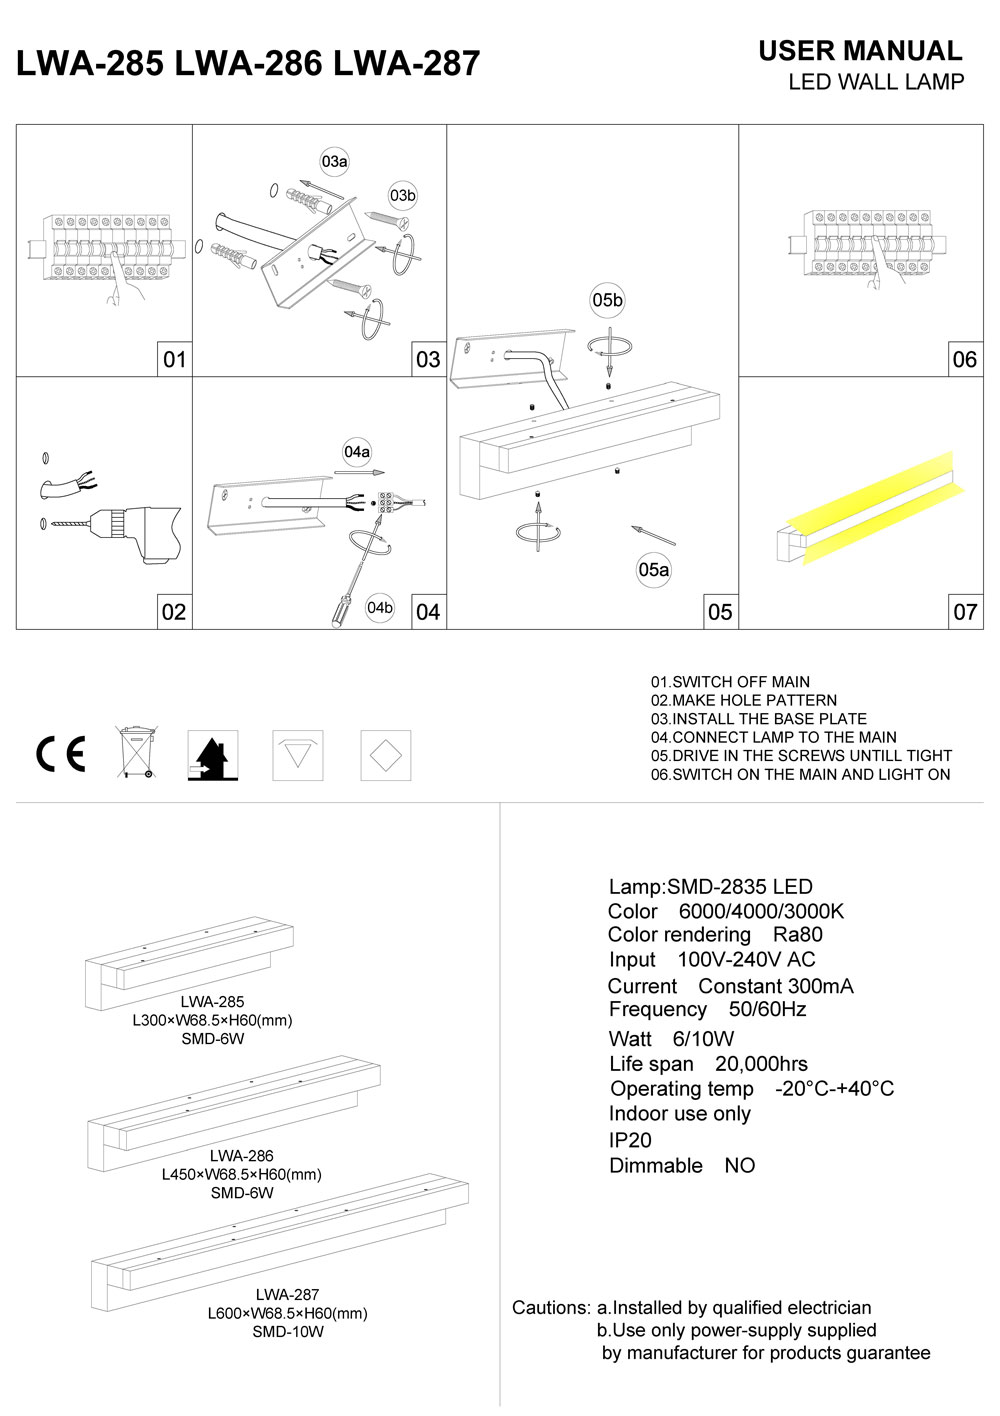 LWA-285-LWA-286-LWA-287 LED mirror light installation guide